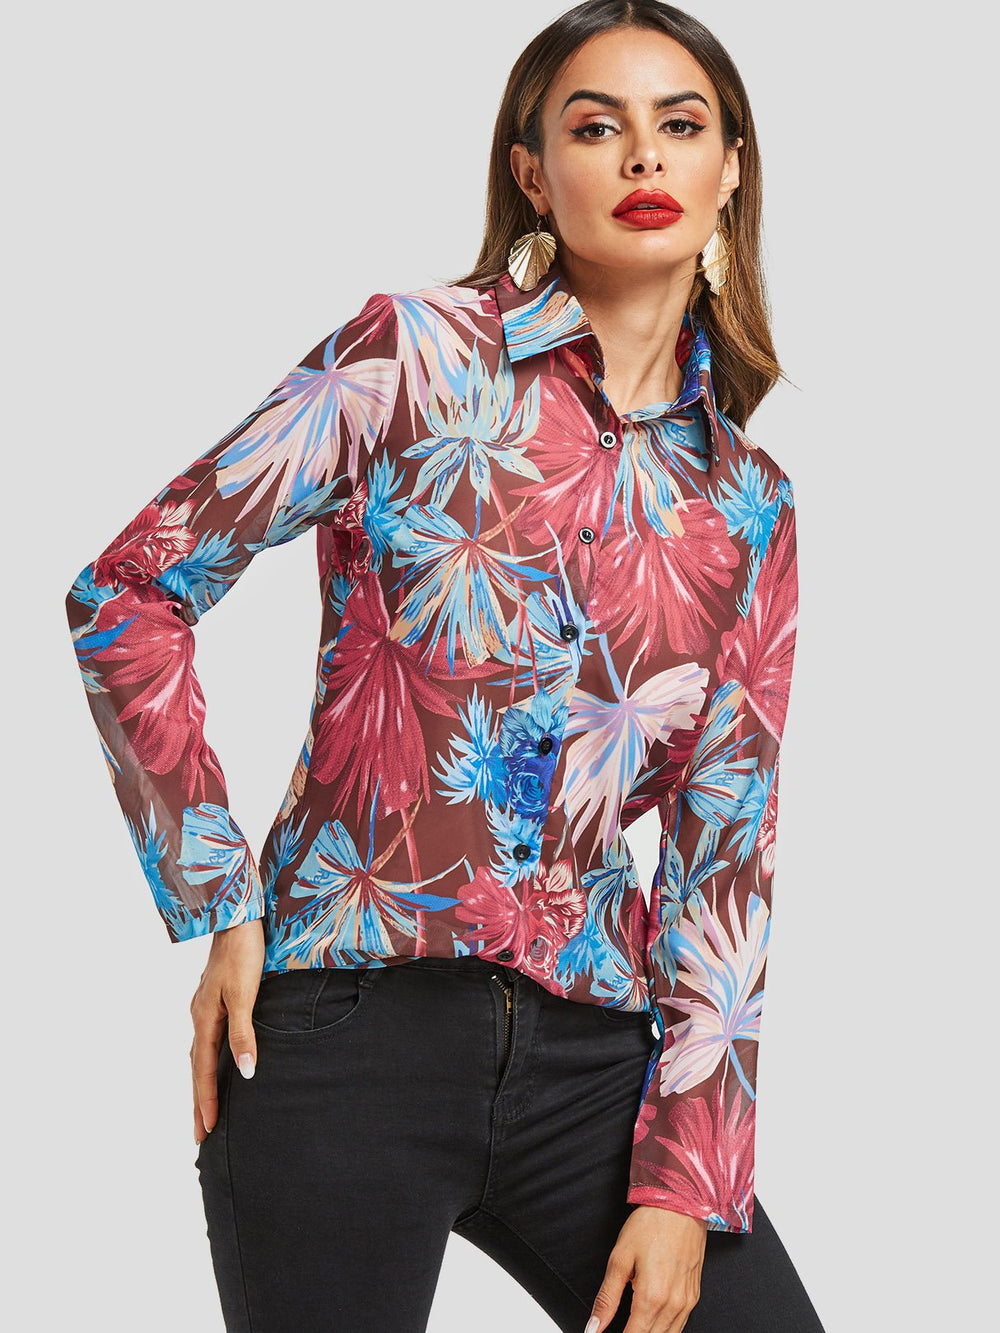 Womens Sleeveless Buttonup Shirts Blouses